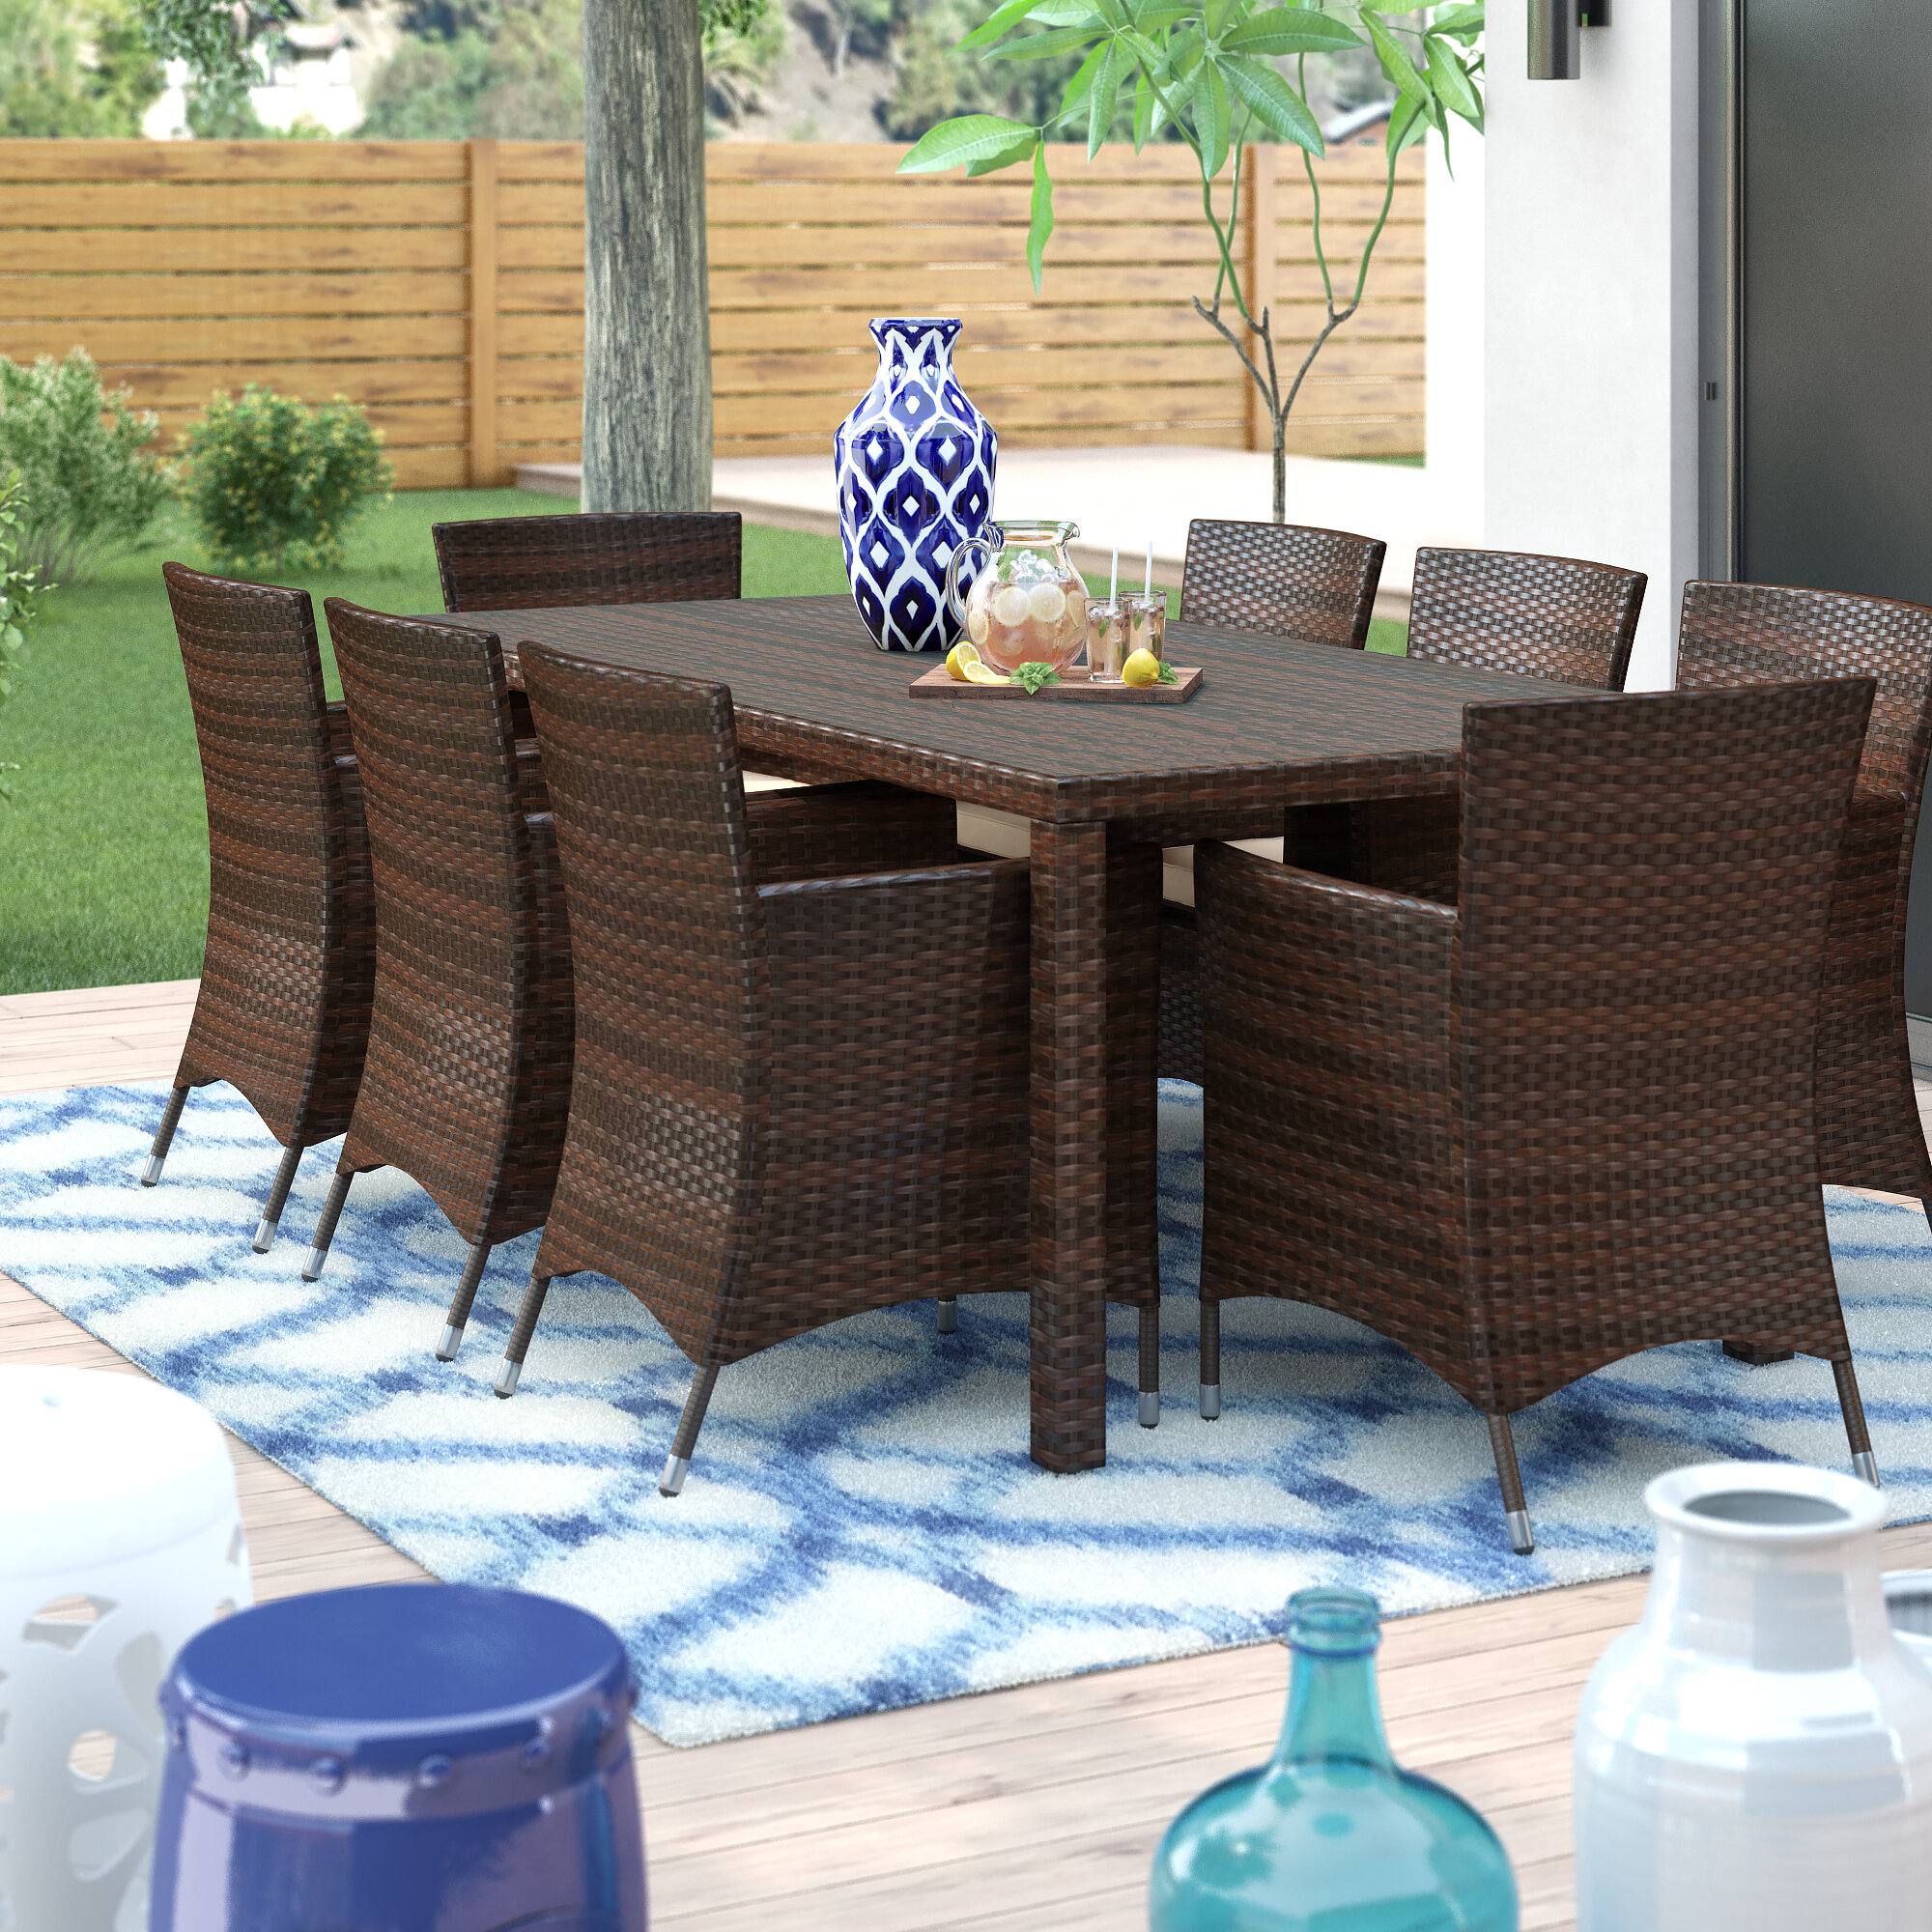 Surprising Kennerdell 9 Piece Dining Set With Cushions Cjindustries Chair Design For Home Cjindustriesco